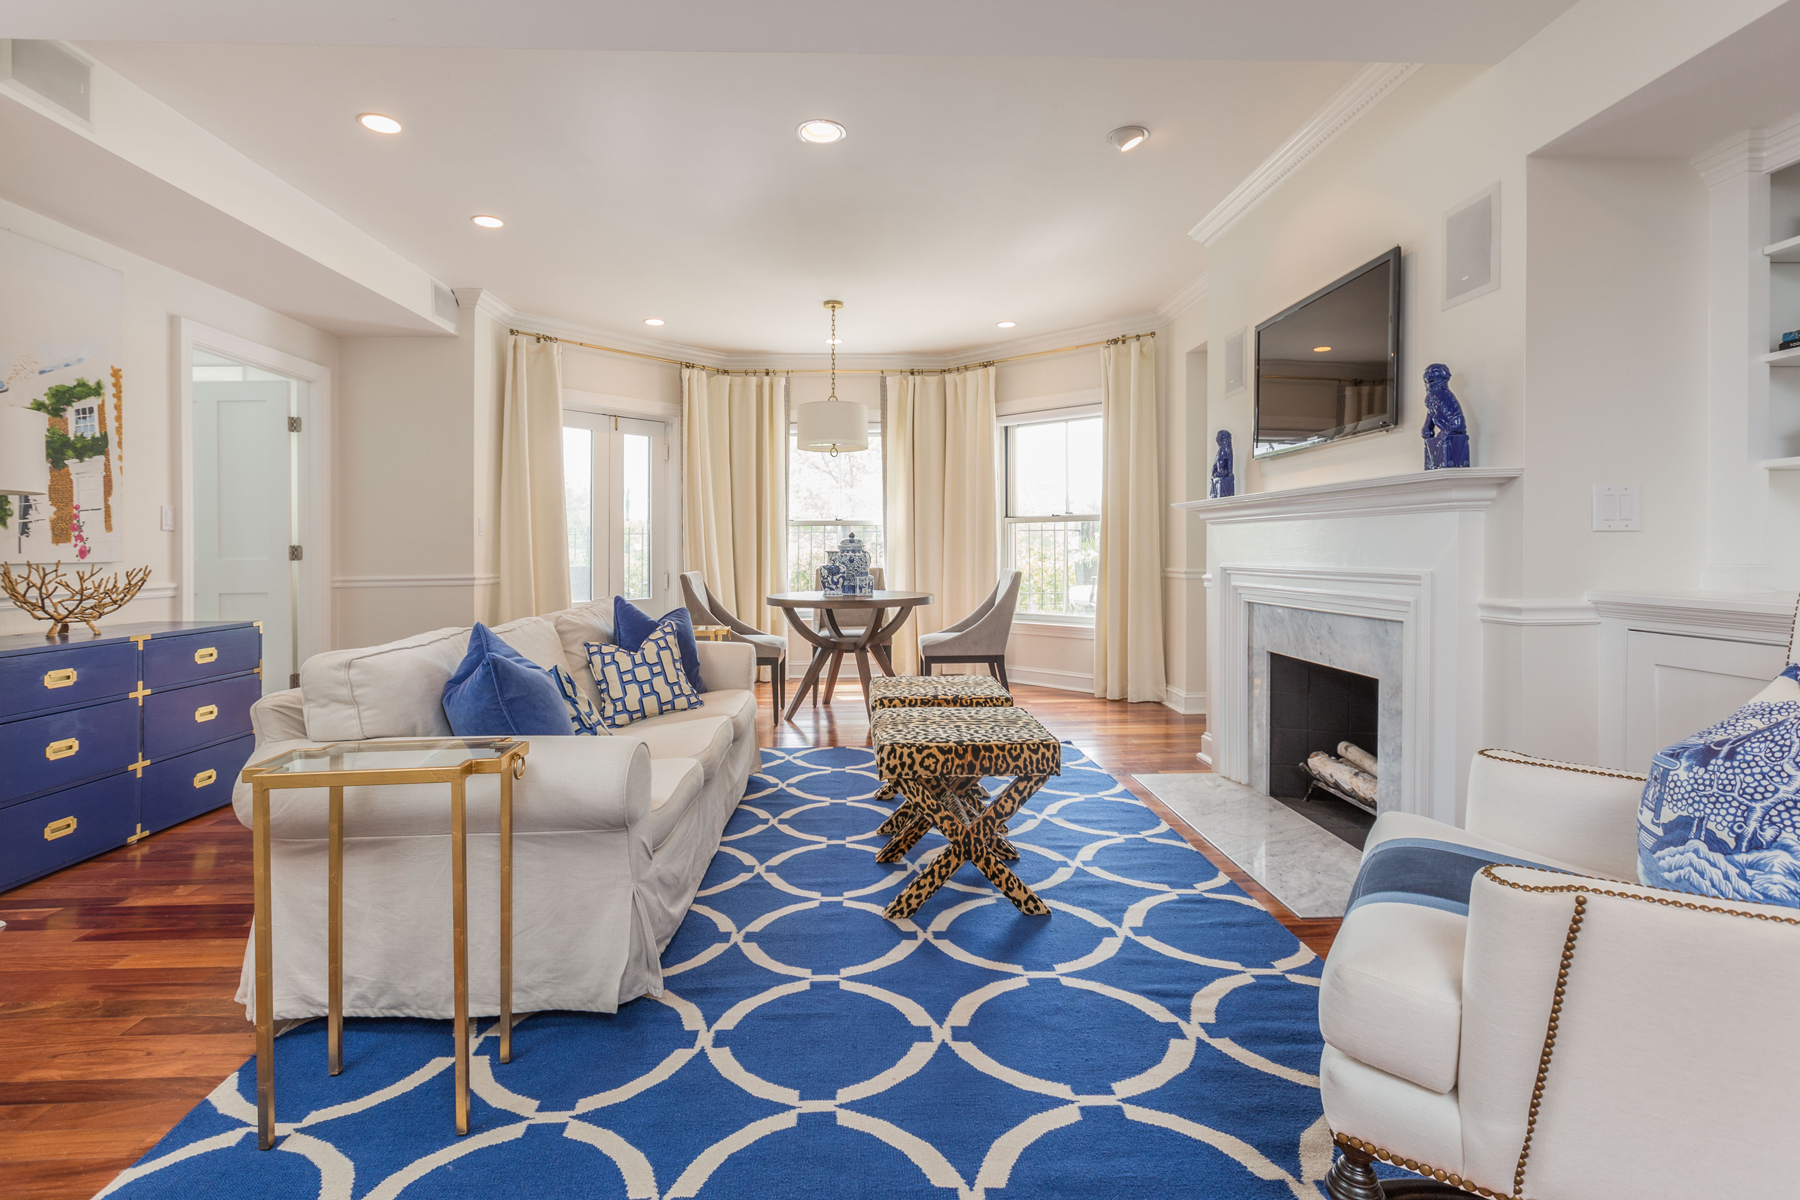 Condominium for Sale at Stunningly Renovated Two Bedroom Two Bath At The Full Service Somerset 416 Commonwealth Avenue Unit 220 Boston, Massachusetts 02215 United States